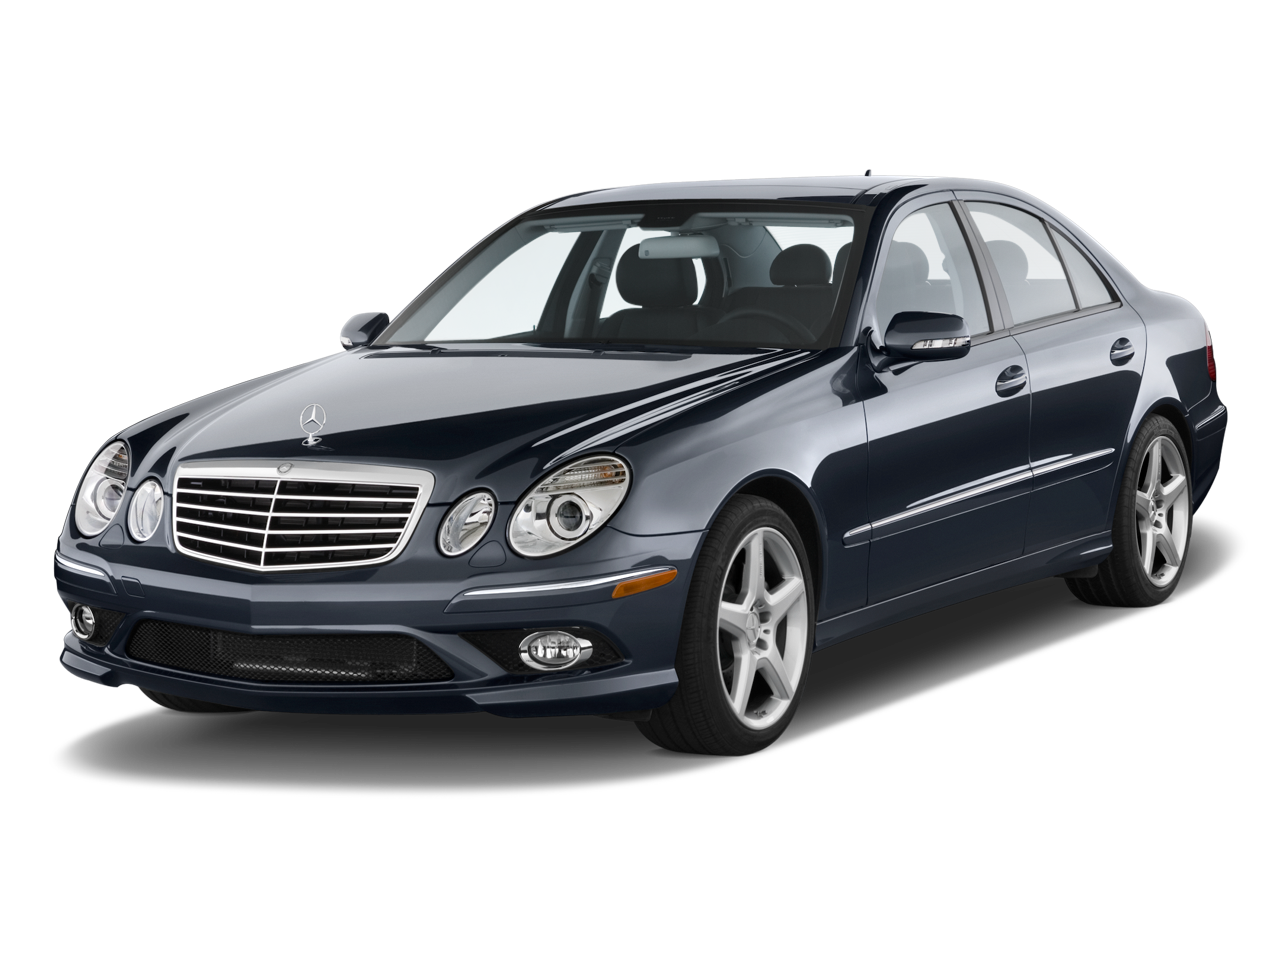 2009 mercedes benz e320 bluetec fuel efficient cars for Cars of mercedes benz